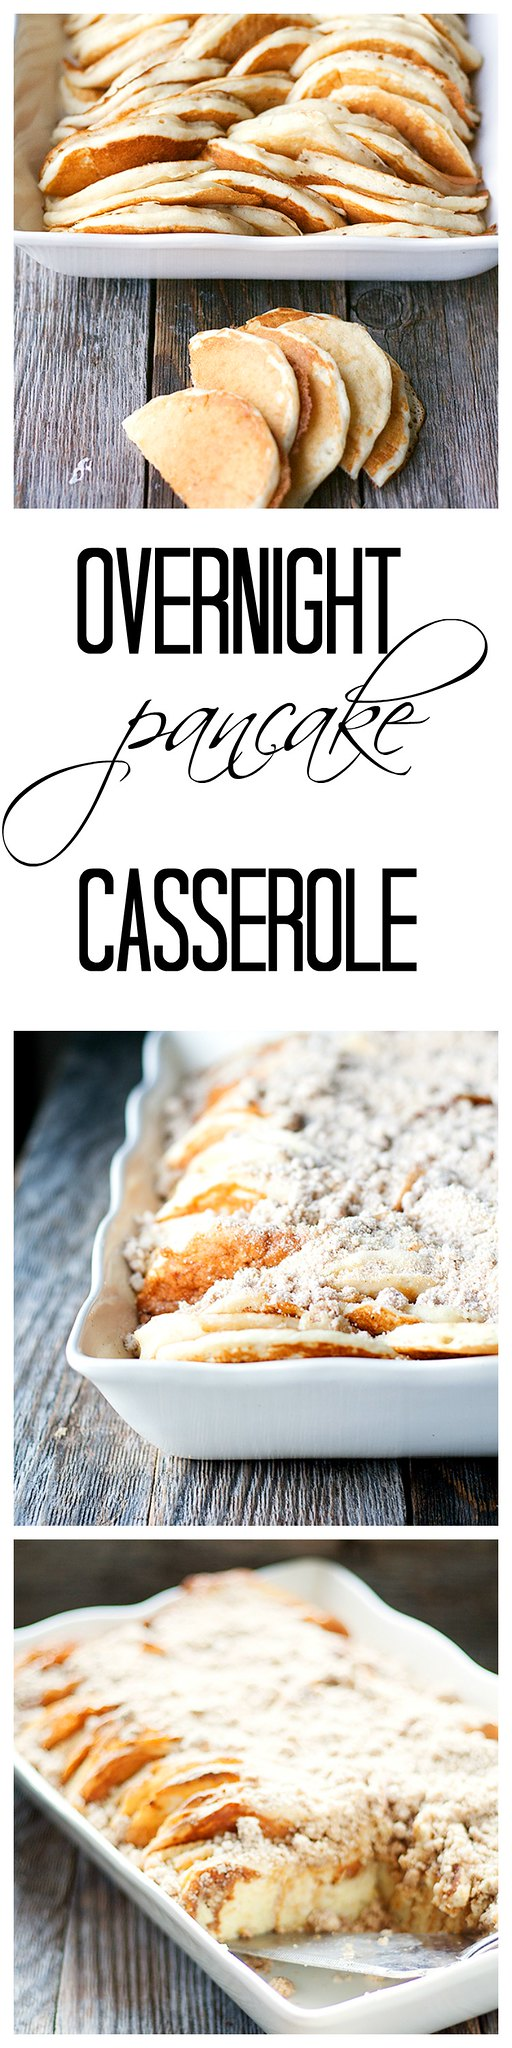 this overnight pancake casserole is an easy way to feed breakfast or brunch to  your hungry crowd